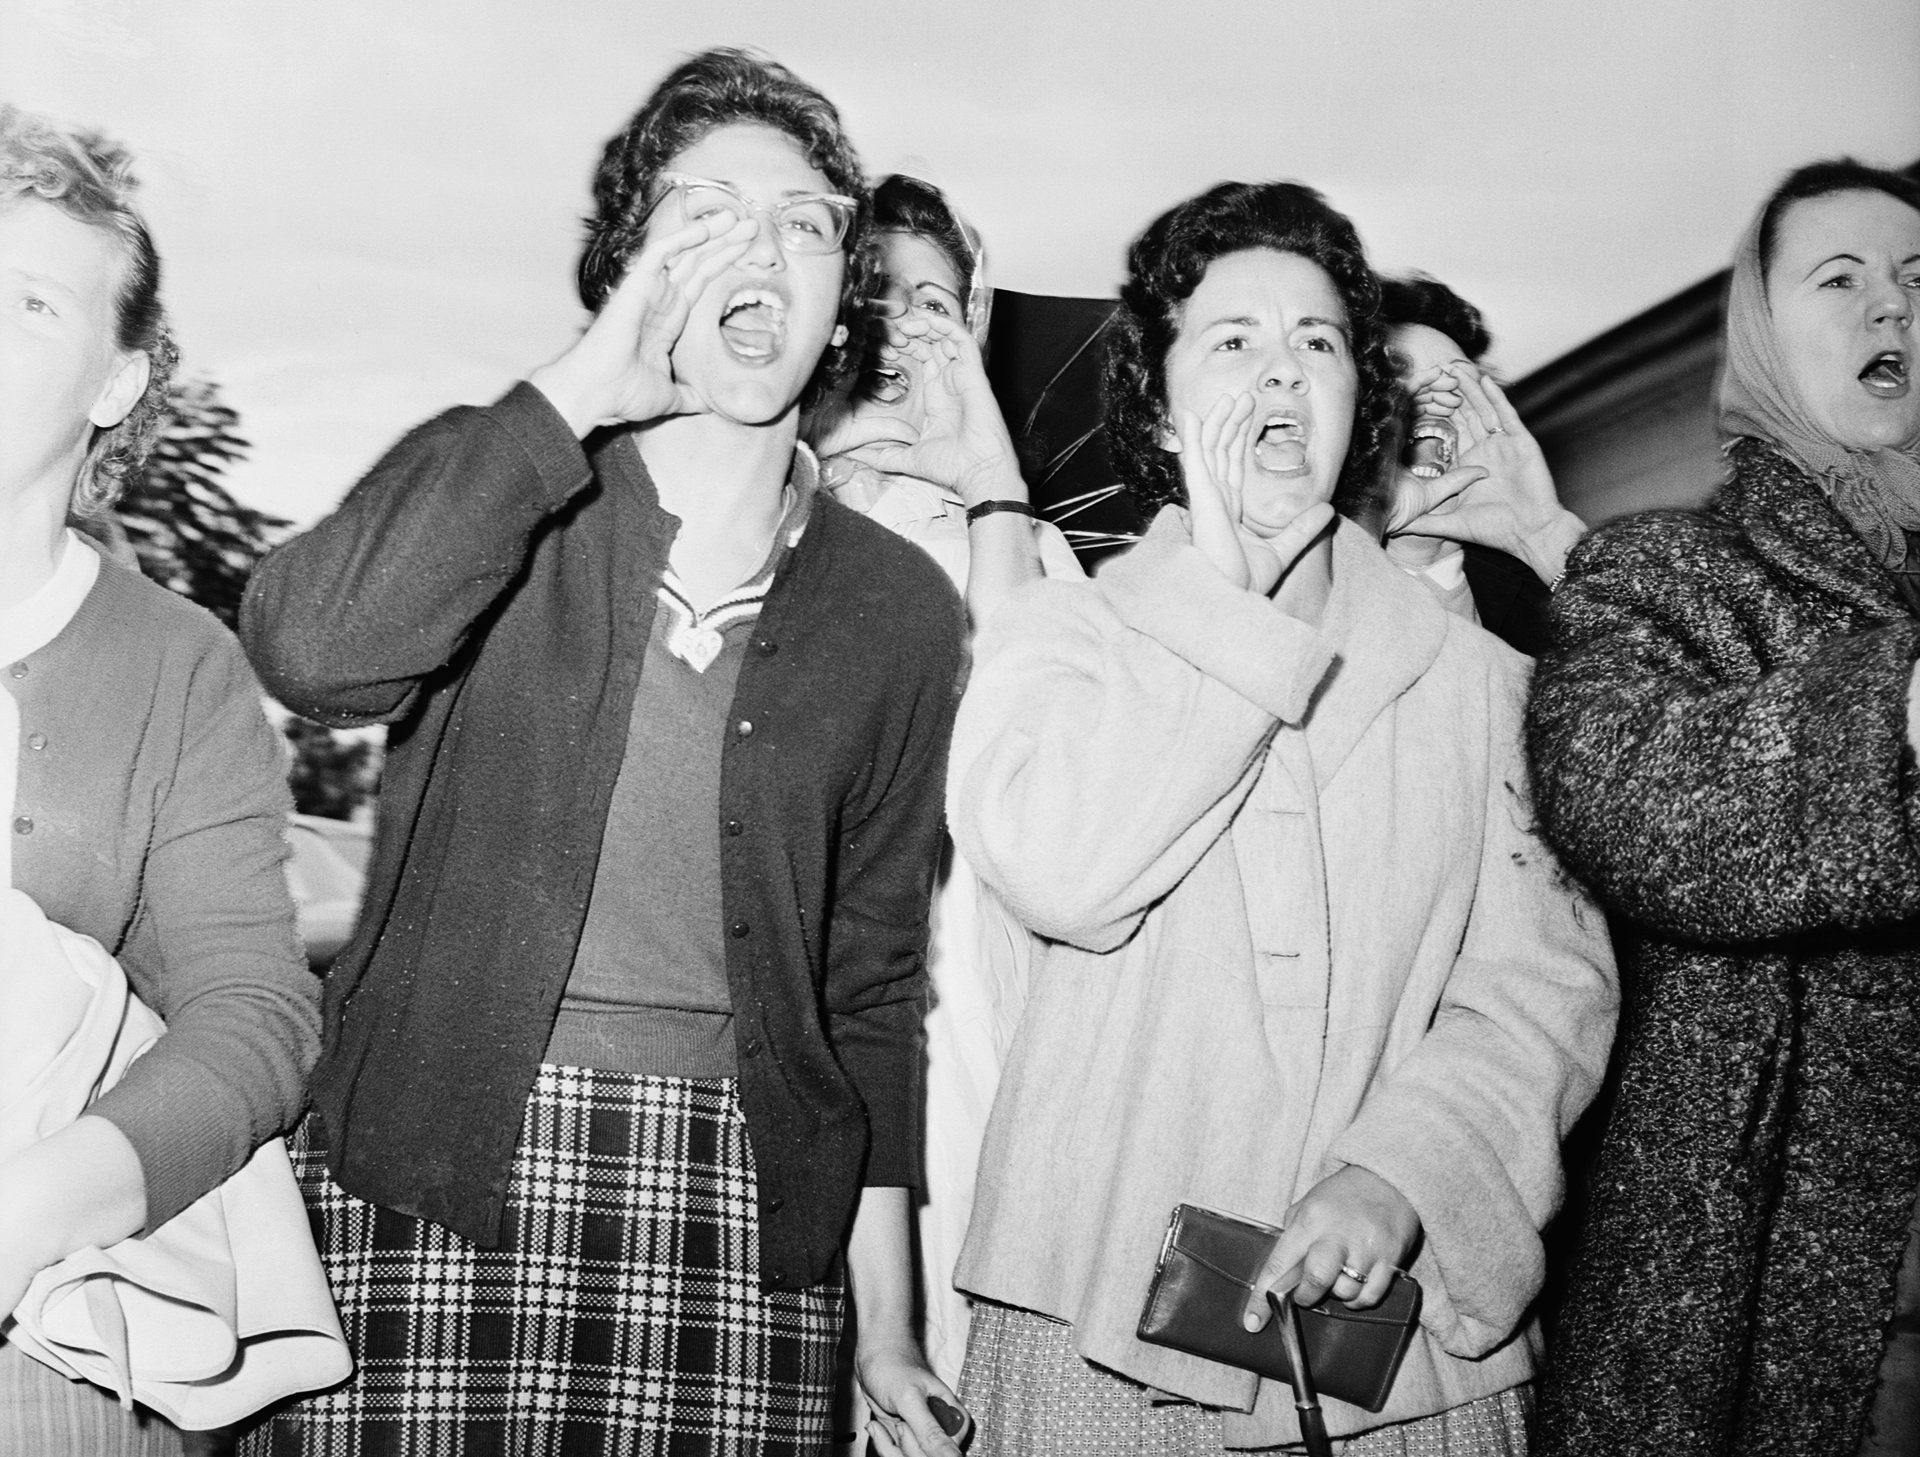 At McDough Elementary in New Orleans, Louisiana, mothers of white students scream as three six-year-old girls enter the school on their fifth day of classes. The New Orleans public school system was ordered shut down all next week for teachers' meetings after the attendance fell off by 1/3 following integration. Outbreaks of violence continued in the city with a reported score of arrests made, attributable to the school integration. November 18, 1960